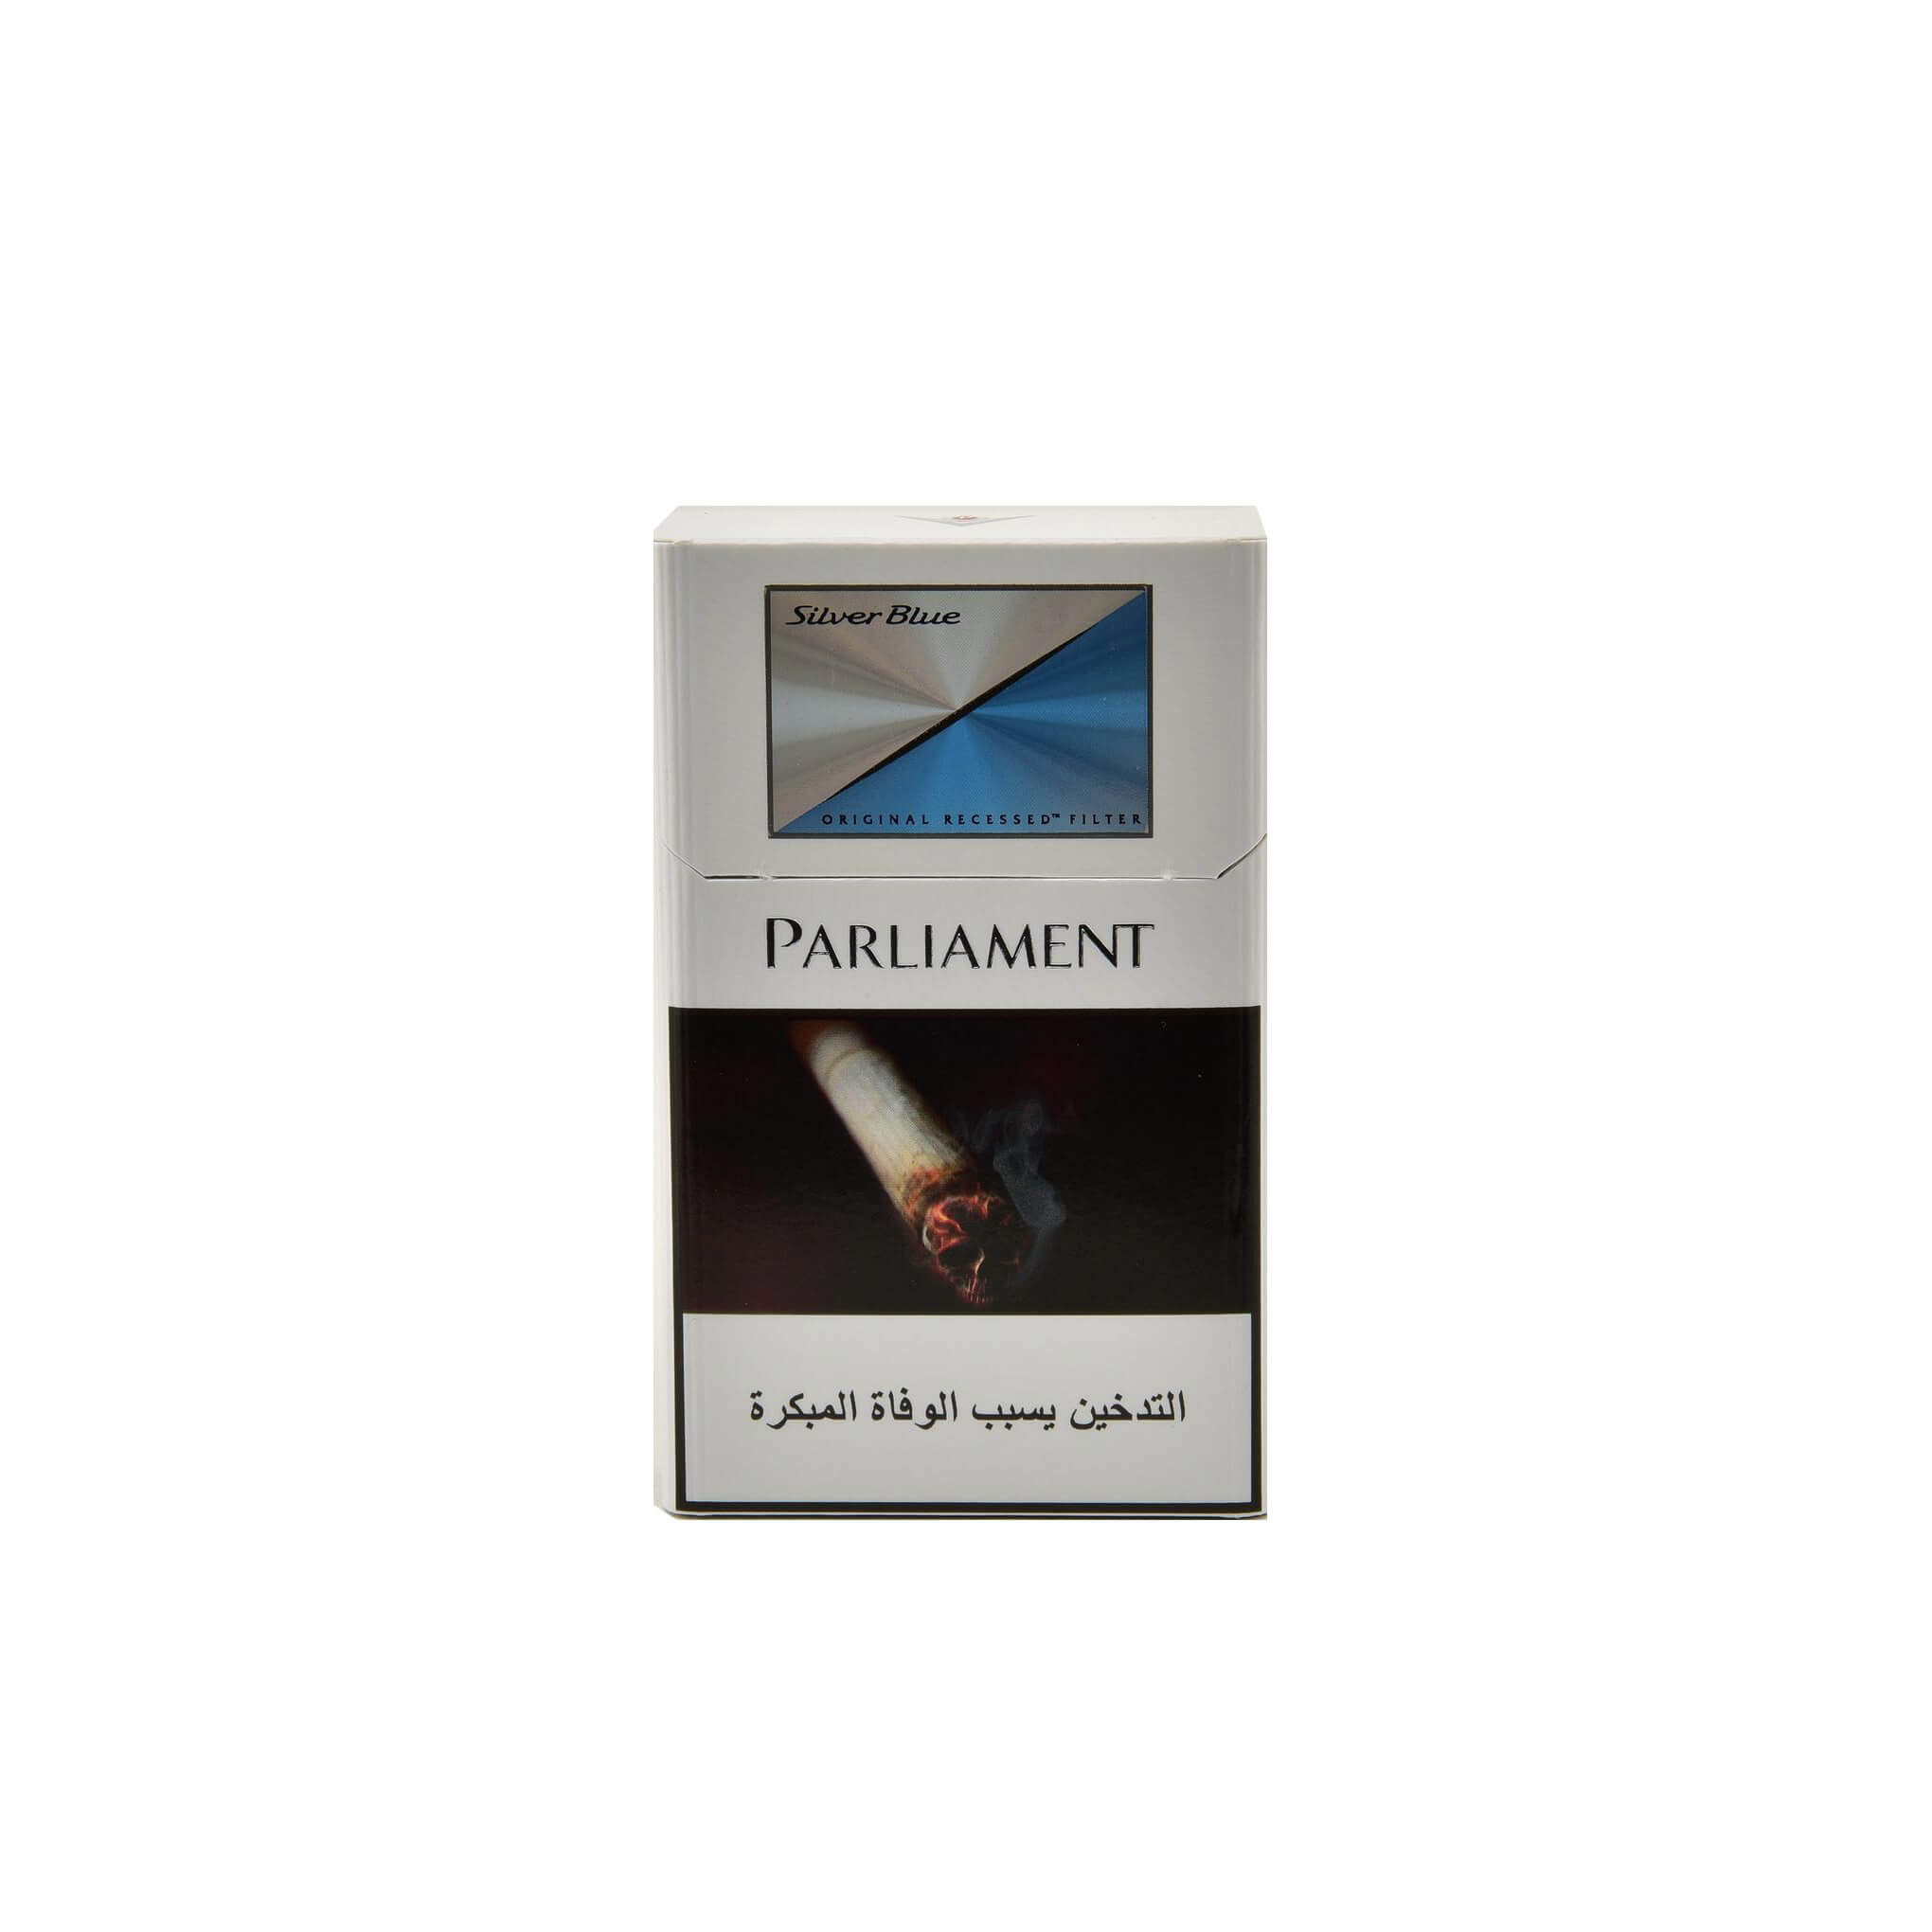 Parliament Silver Blue Cigarettes